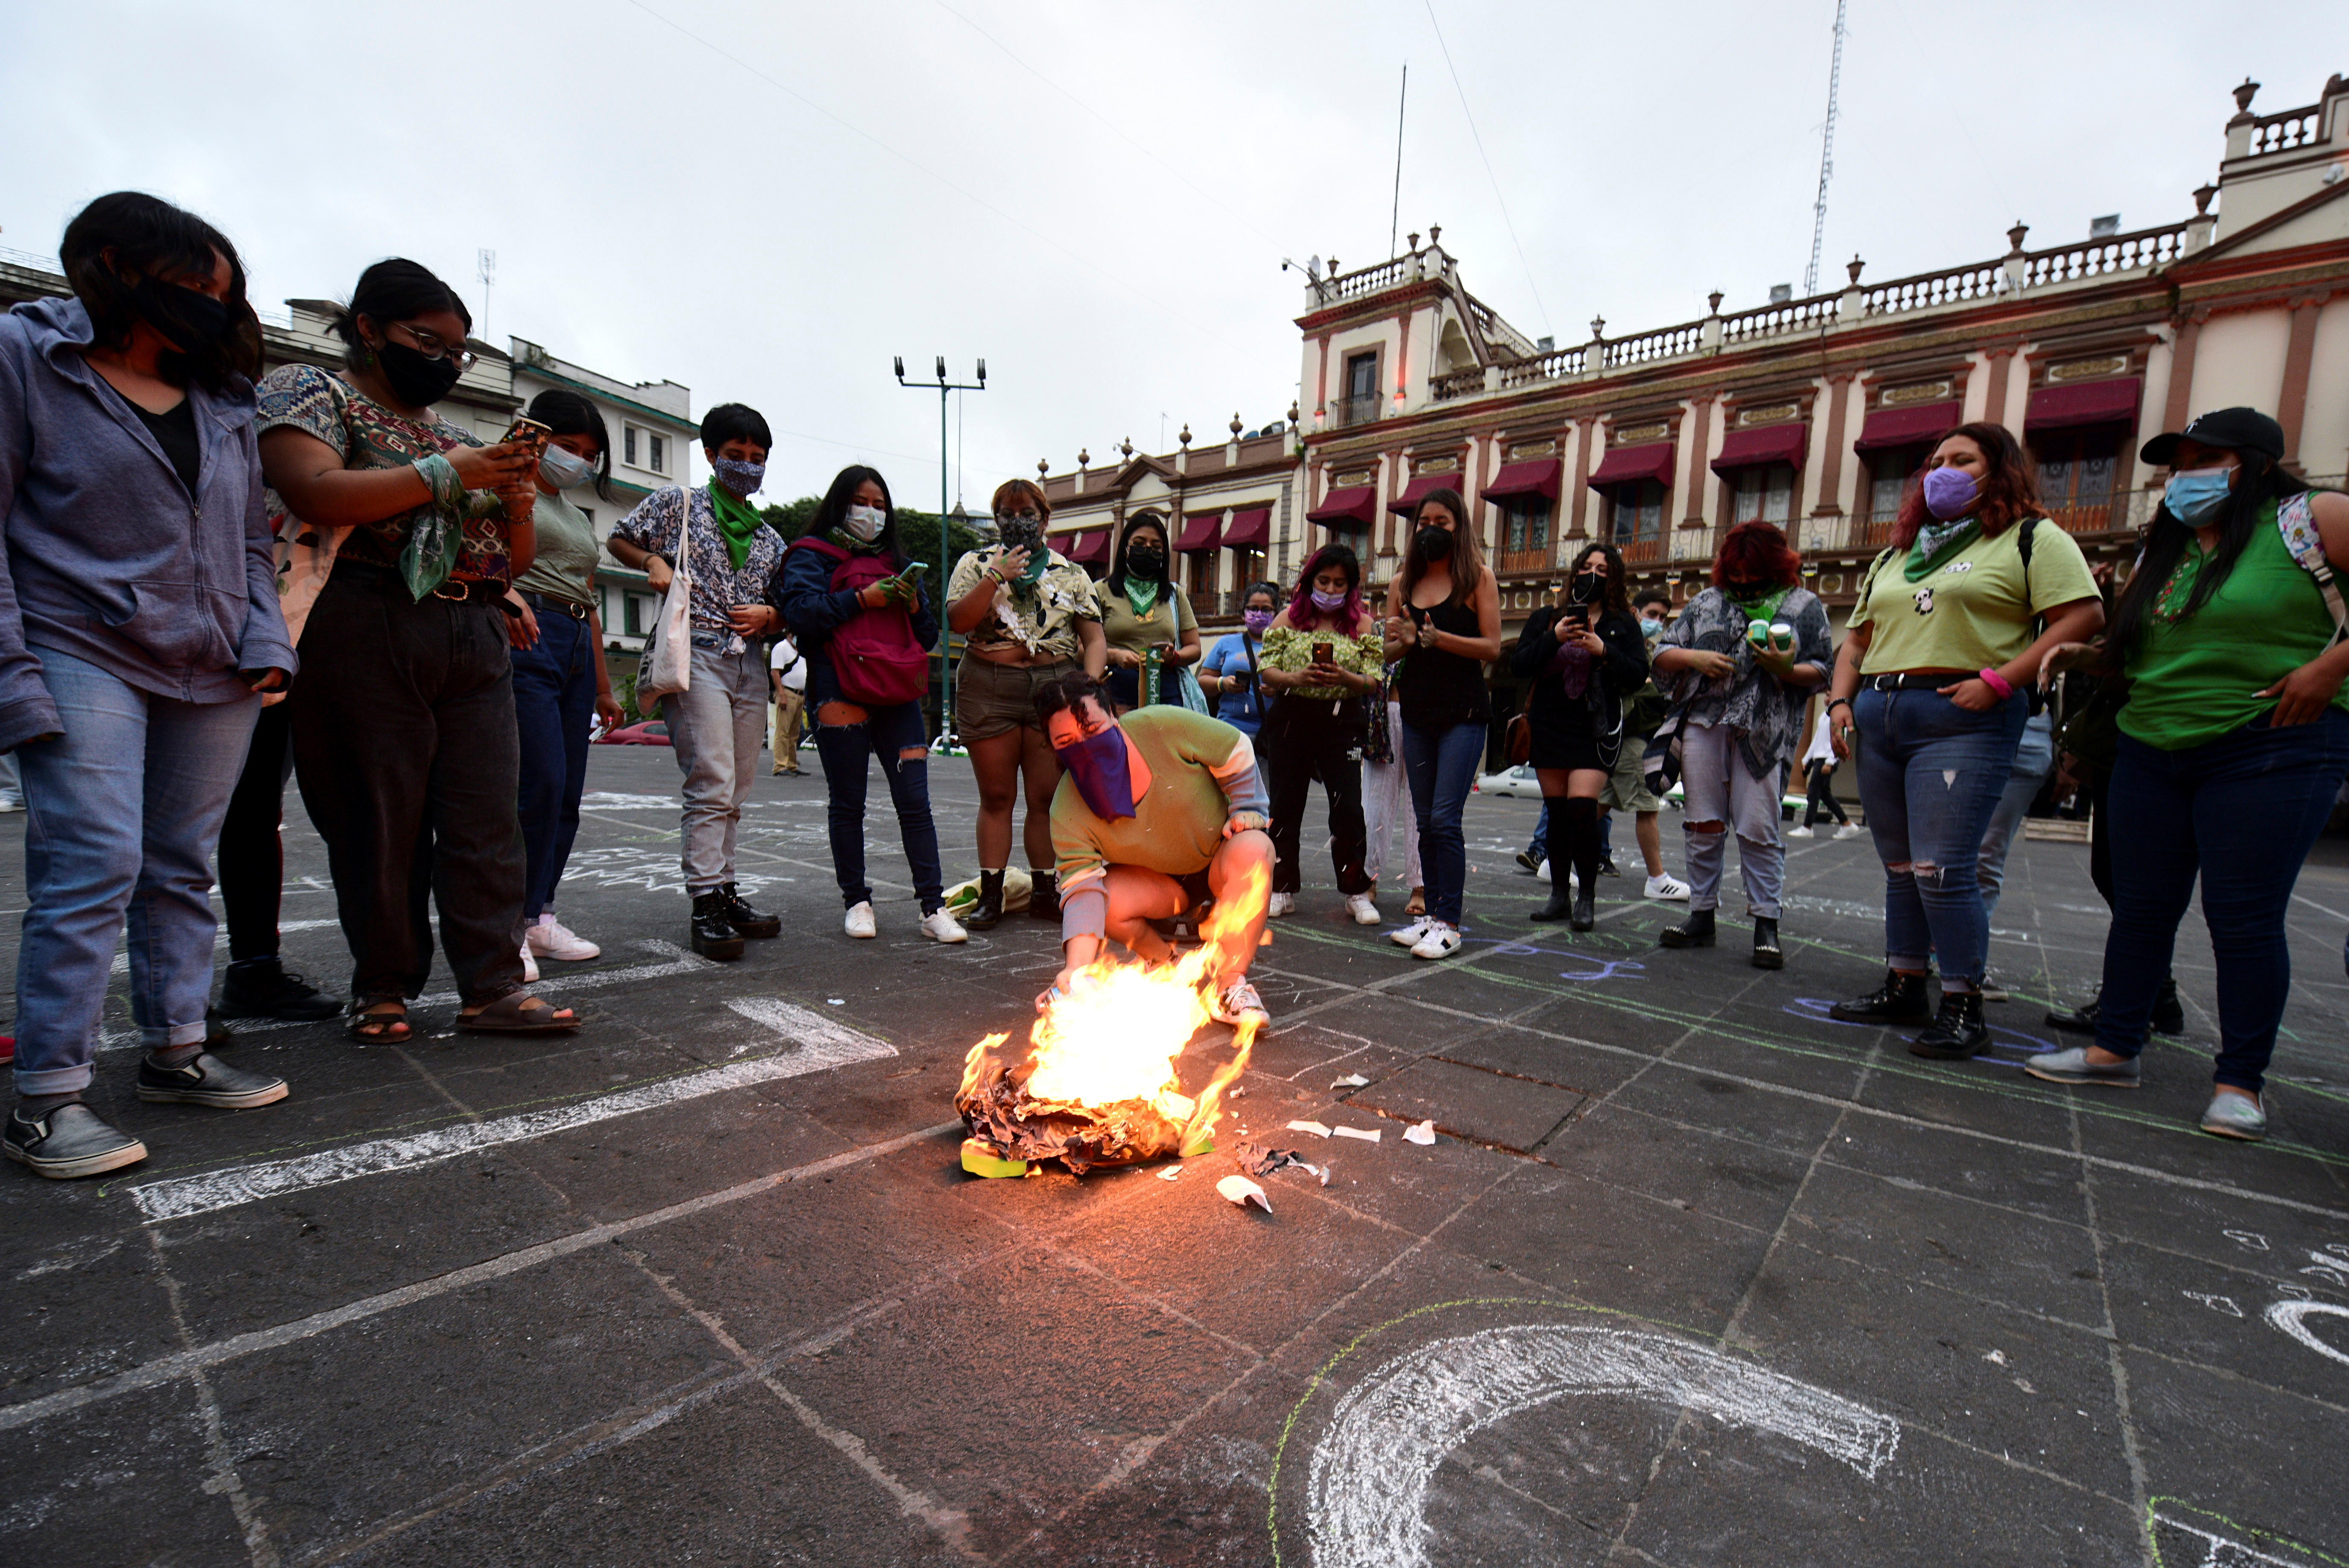 A woman burns papers as she celebrates that Veracruz became the fourth state in Mexico to clear away criminal penalties for elective abortion after lawmakers voted to decriminalize the procedure, at Plaza Lerdo in Xalapa, Mexico July 20, 2021. REUTERS/Oscar Martinez